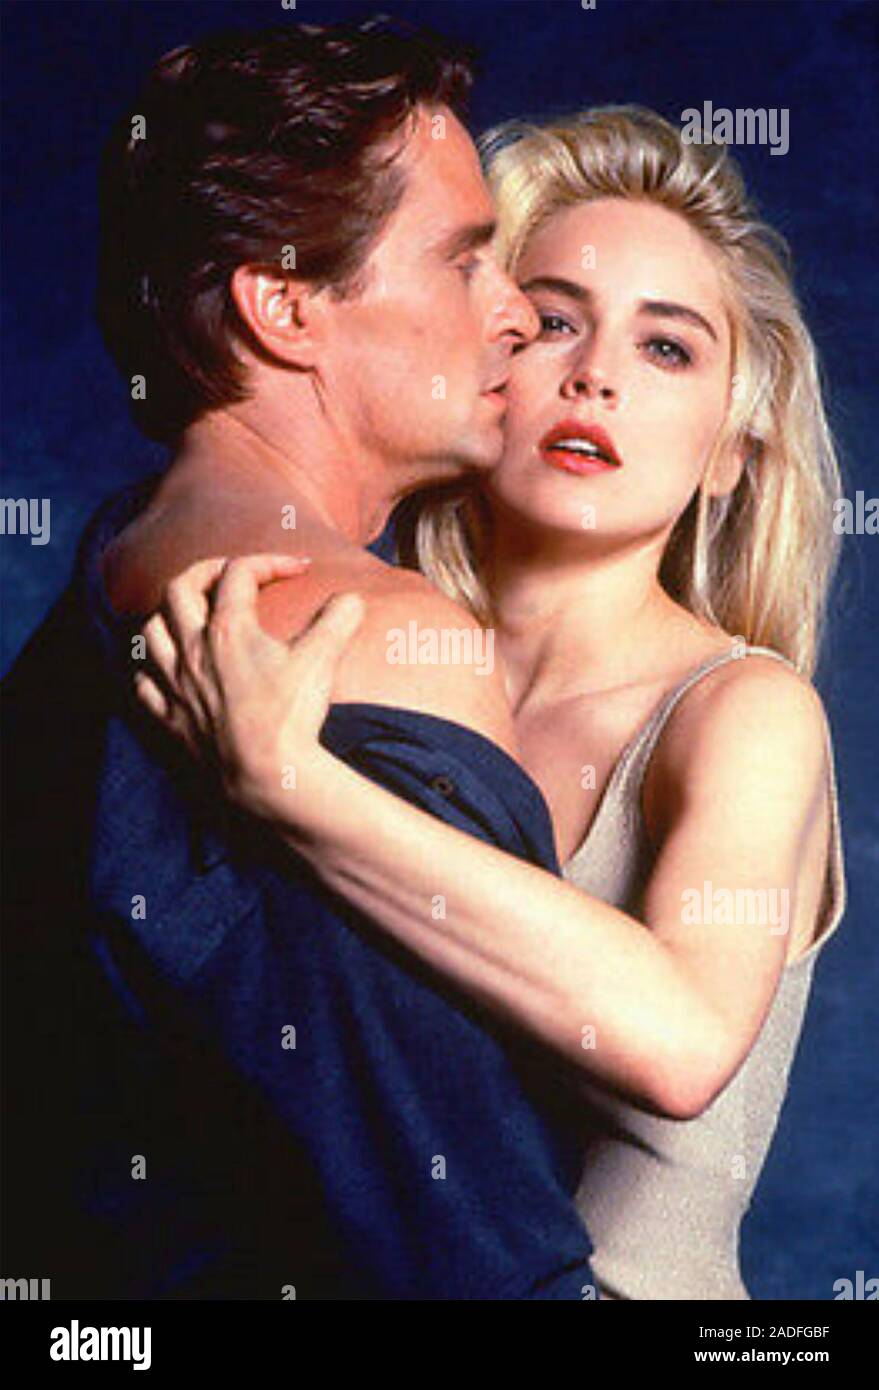 Basic Instinct 1992 Tristar Pictures Film With Sharon Stone And Michael Douglas Stock Photo Alamy